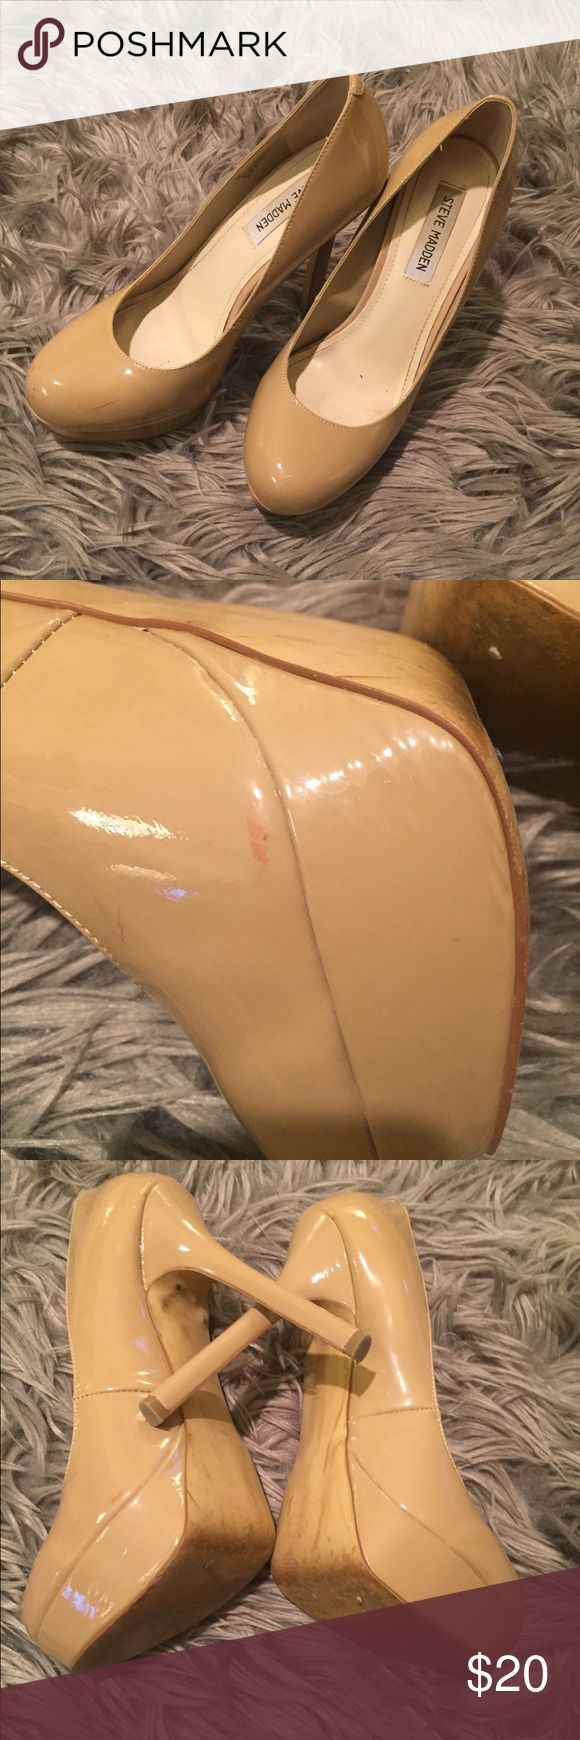 Nude Pumps Scuffs shown in pictures. I do not trade. Sold as it. Steve Madden Shoes Heels